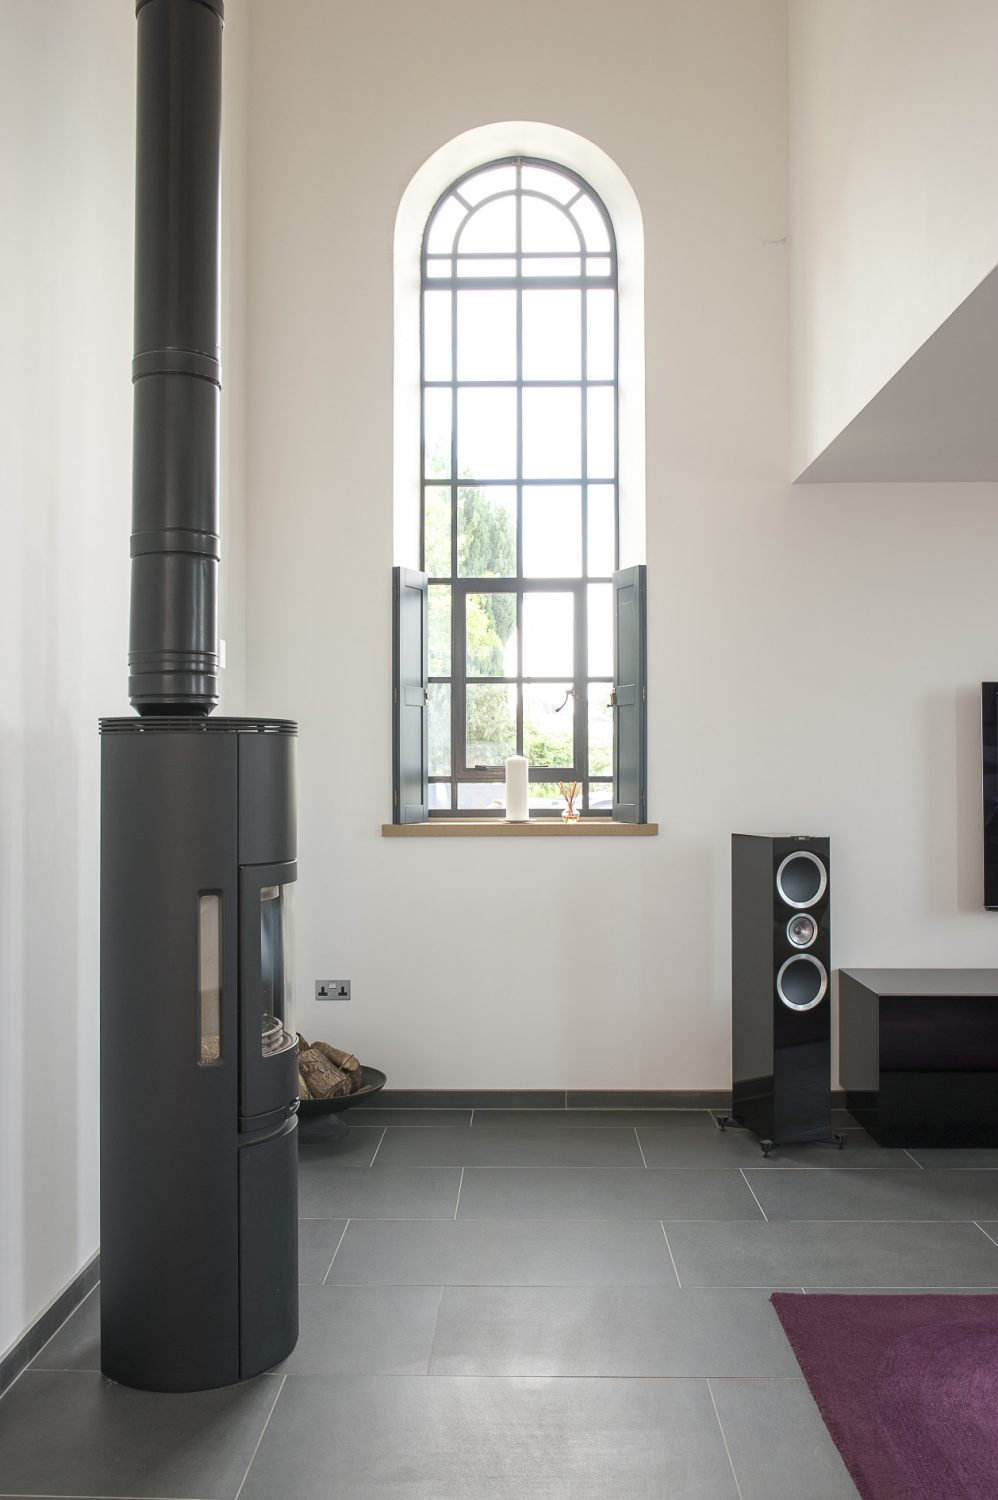 At one end of the room is a contemporary Contura woodburner, the tallest that Nick and Sonja could find